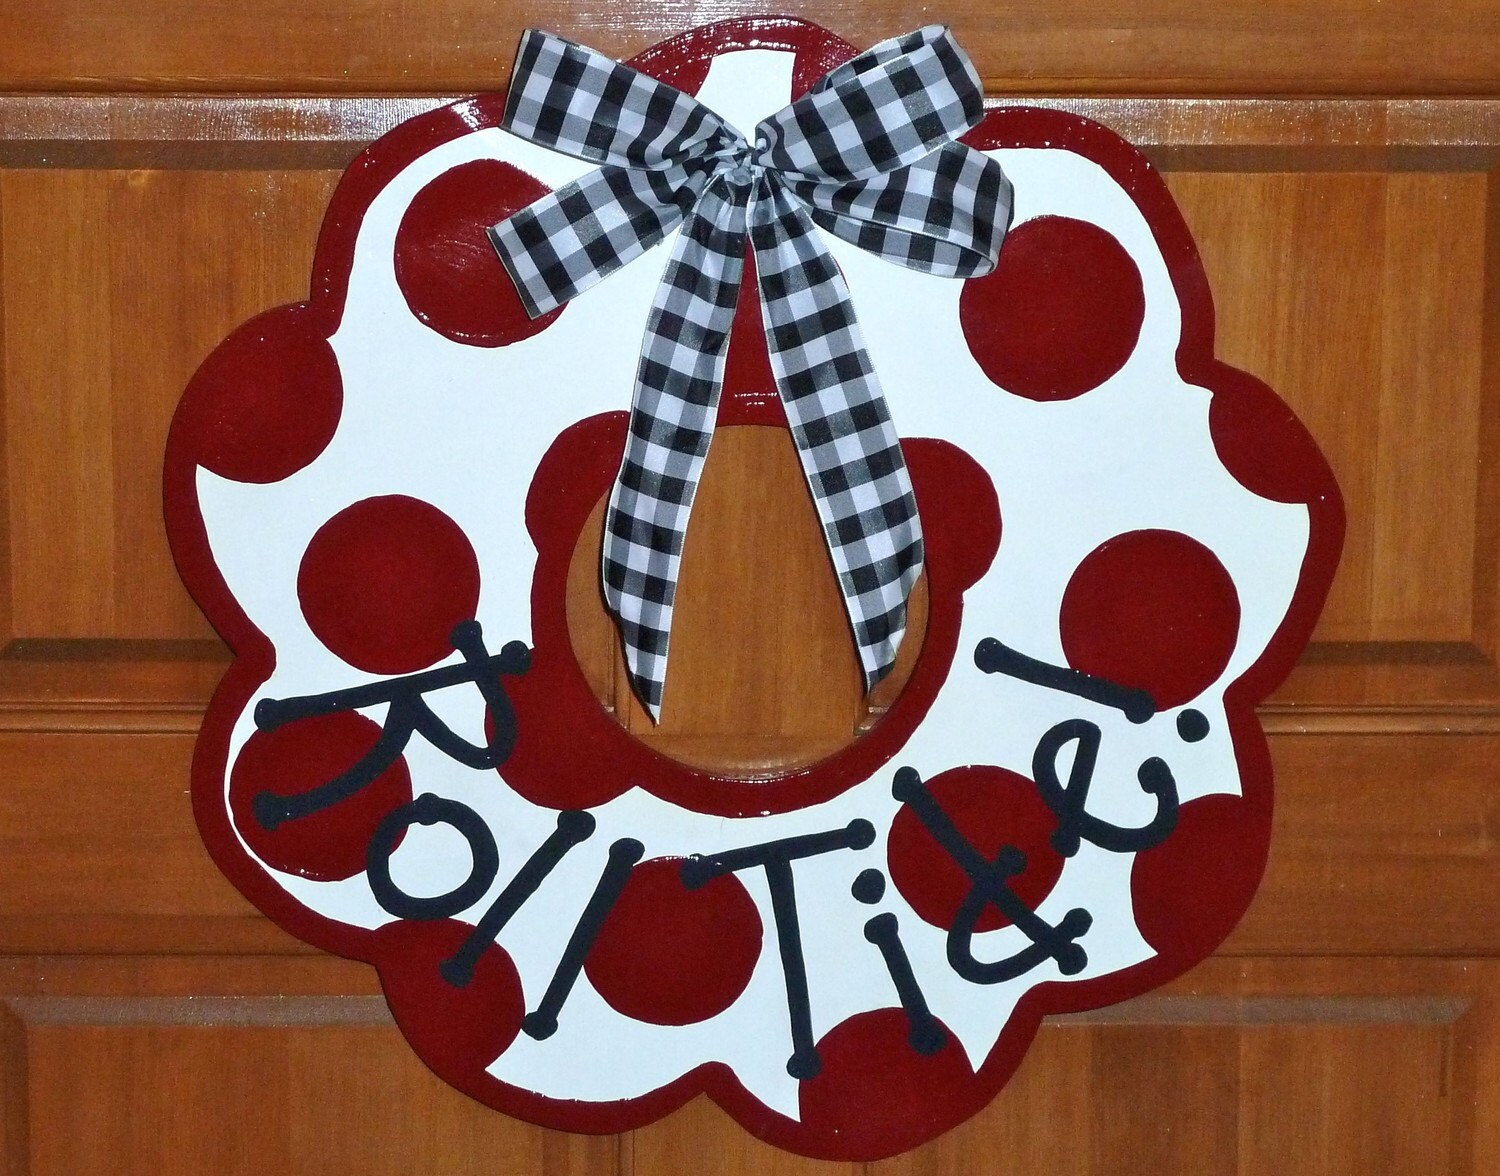 Alabama Crimson Tide Wooden Door Wreath or Wall Decor